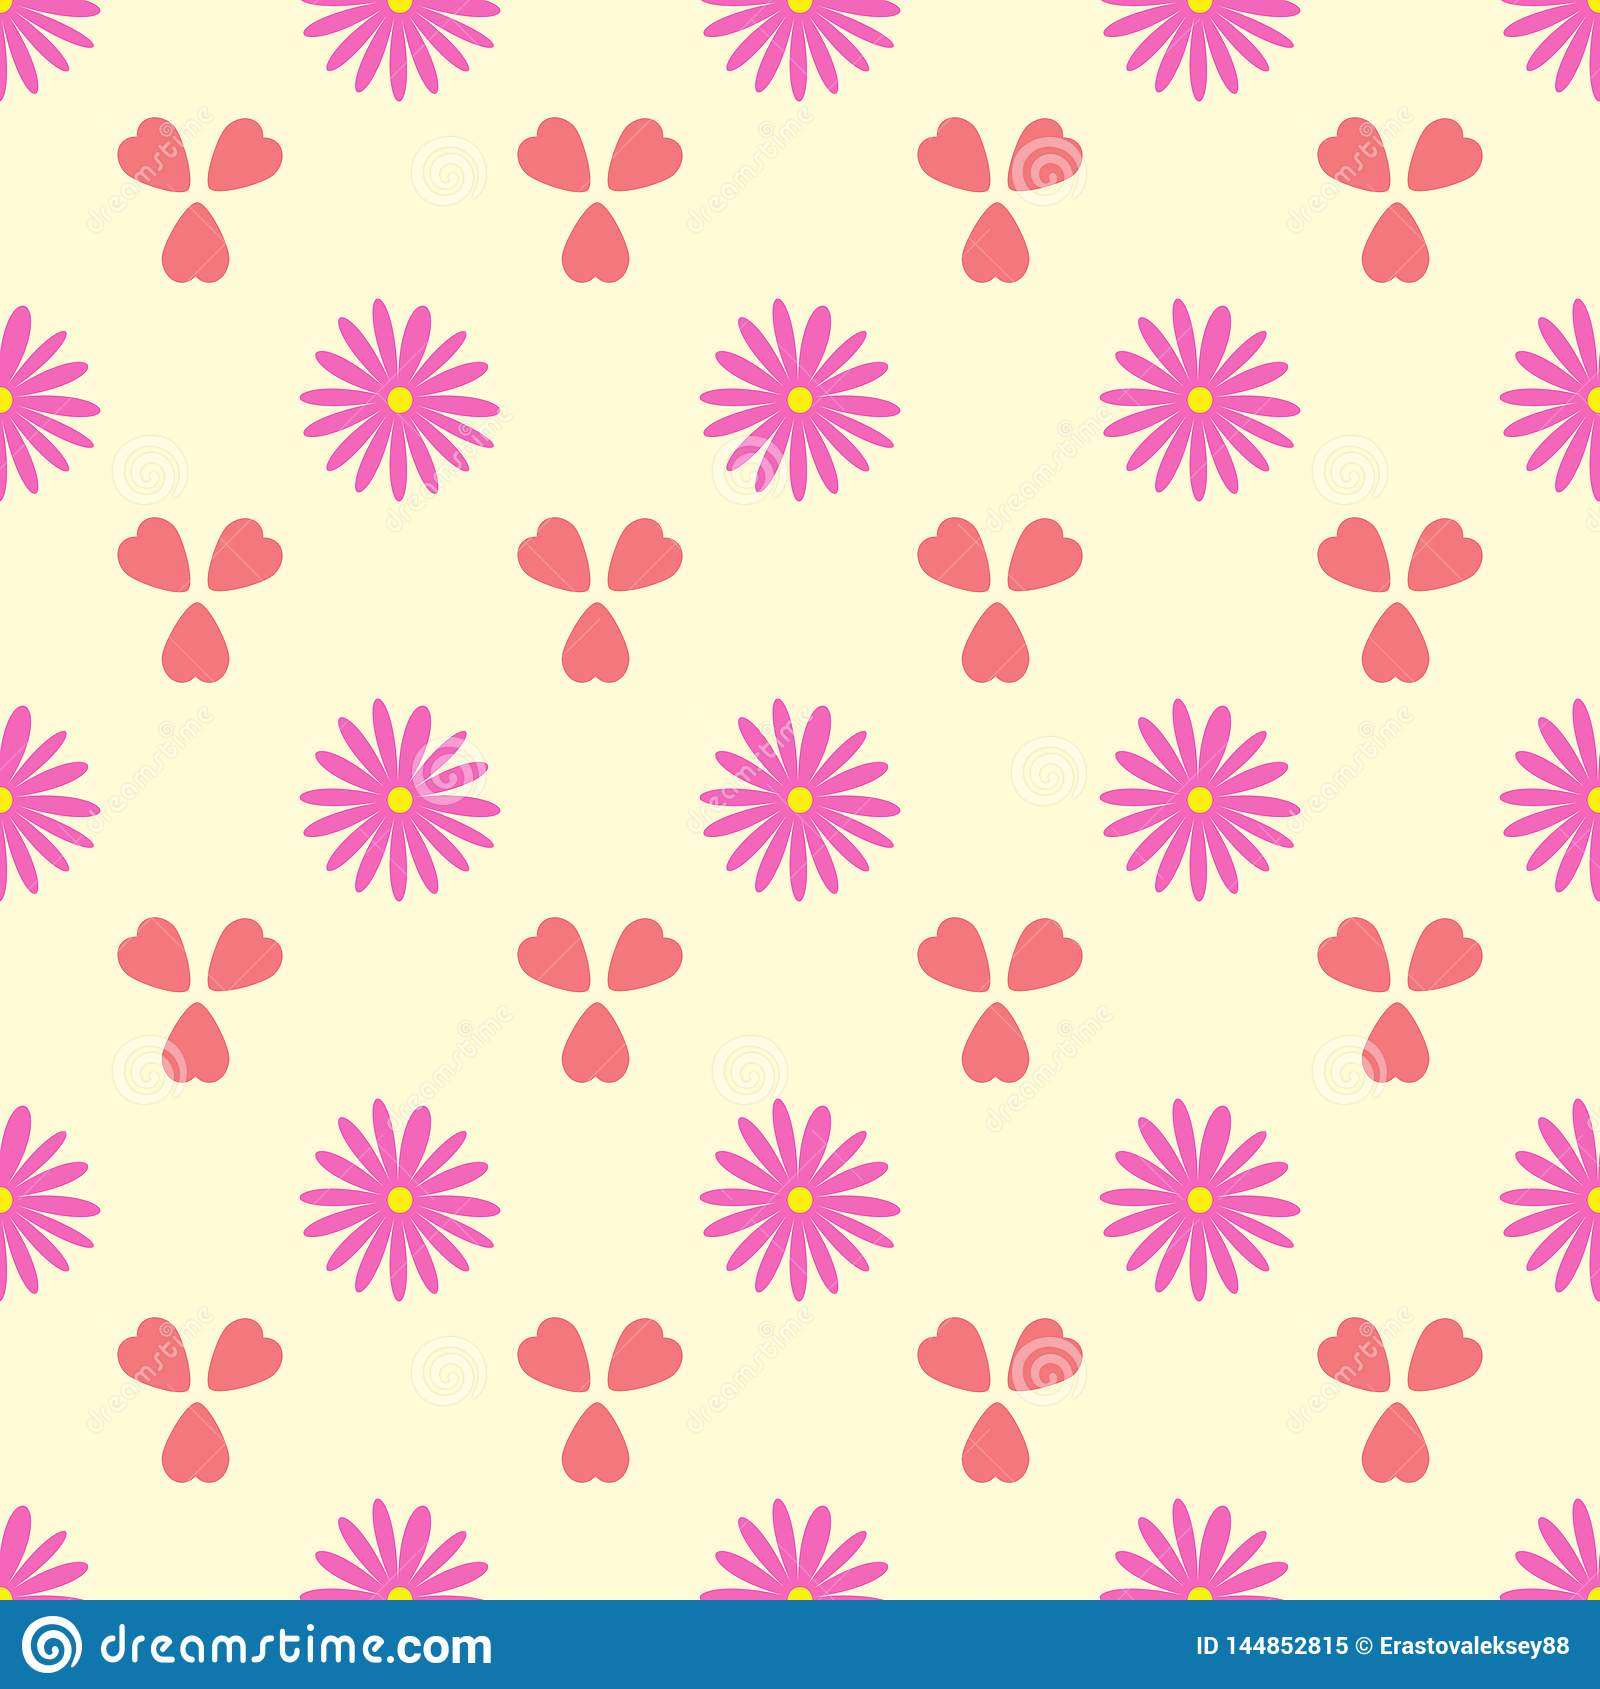 Simple seamless pattern with flowers and hearts. Romantic floral vector illustration.